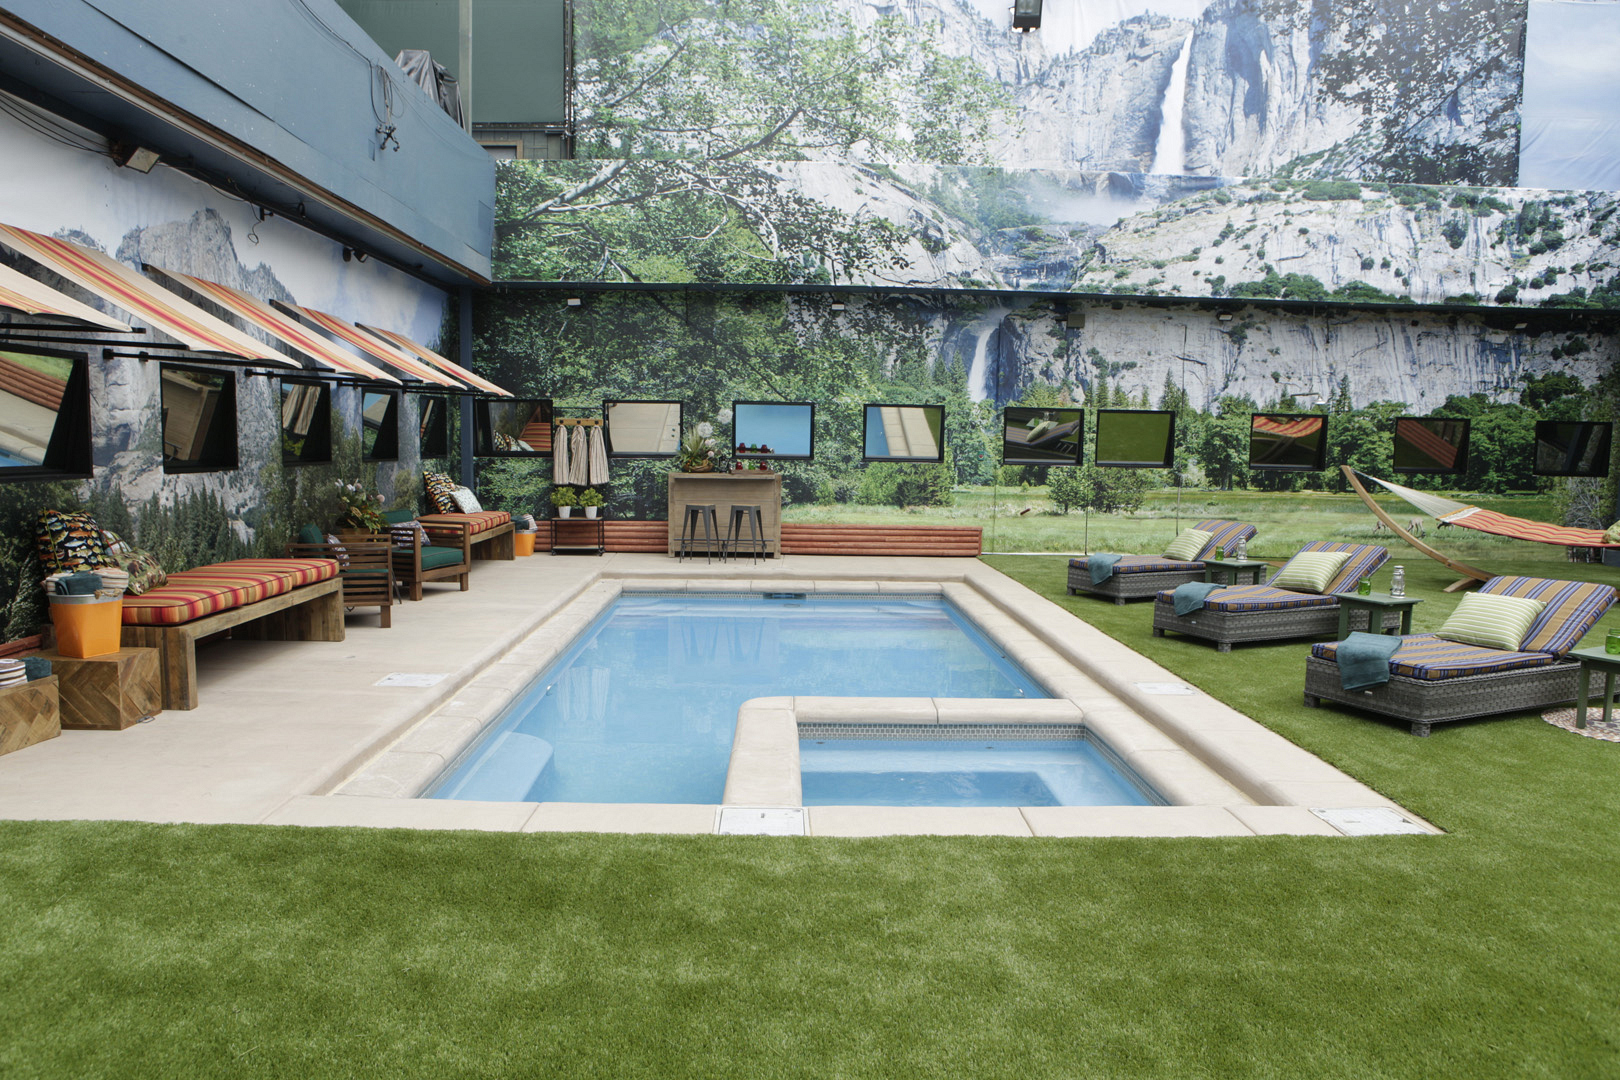 Discover Big Brother's revamped new backyard.